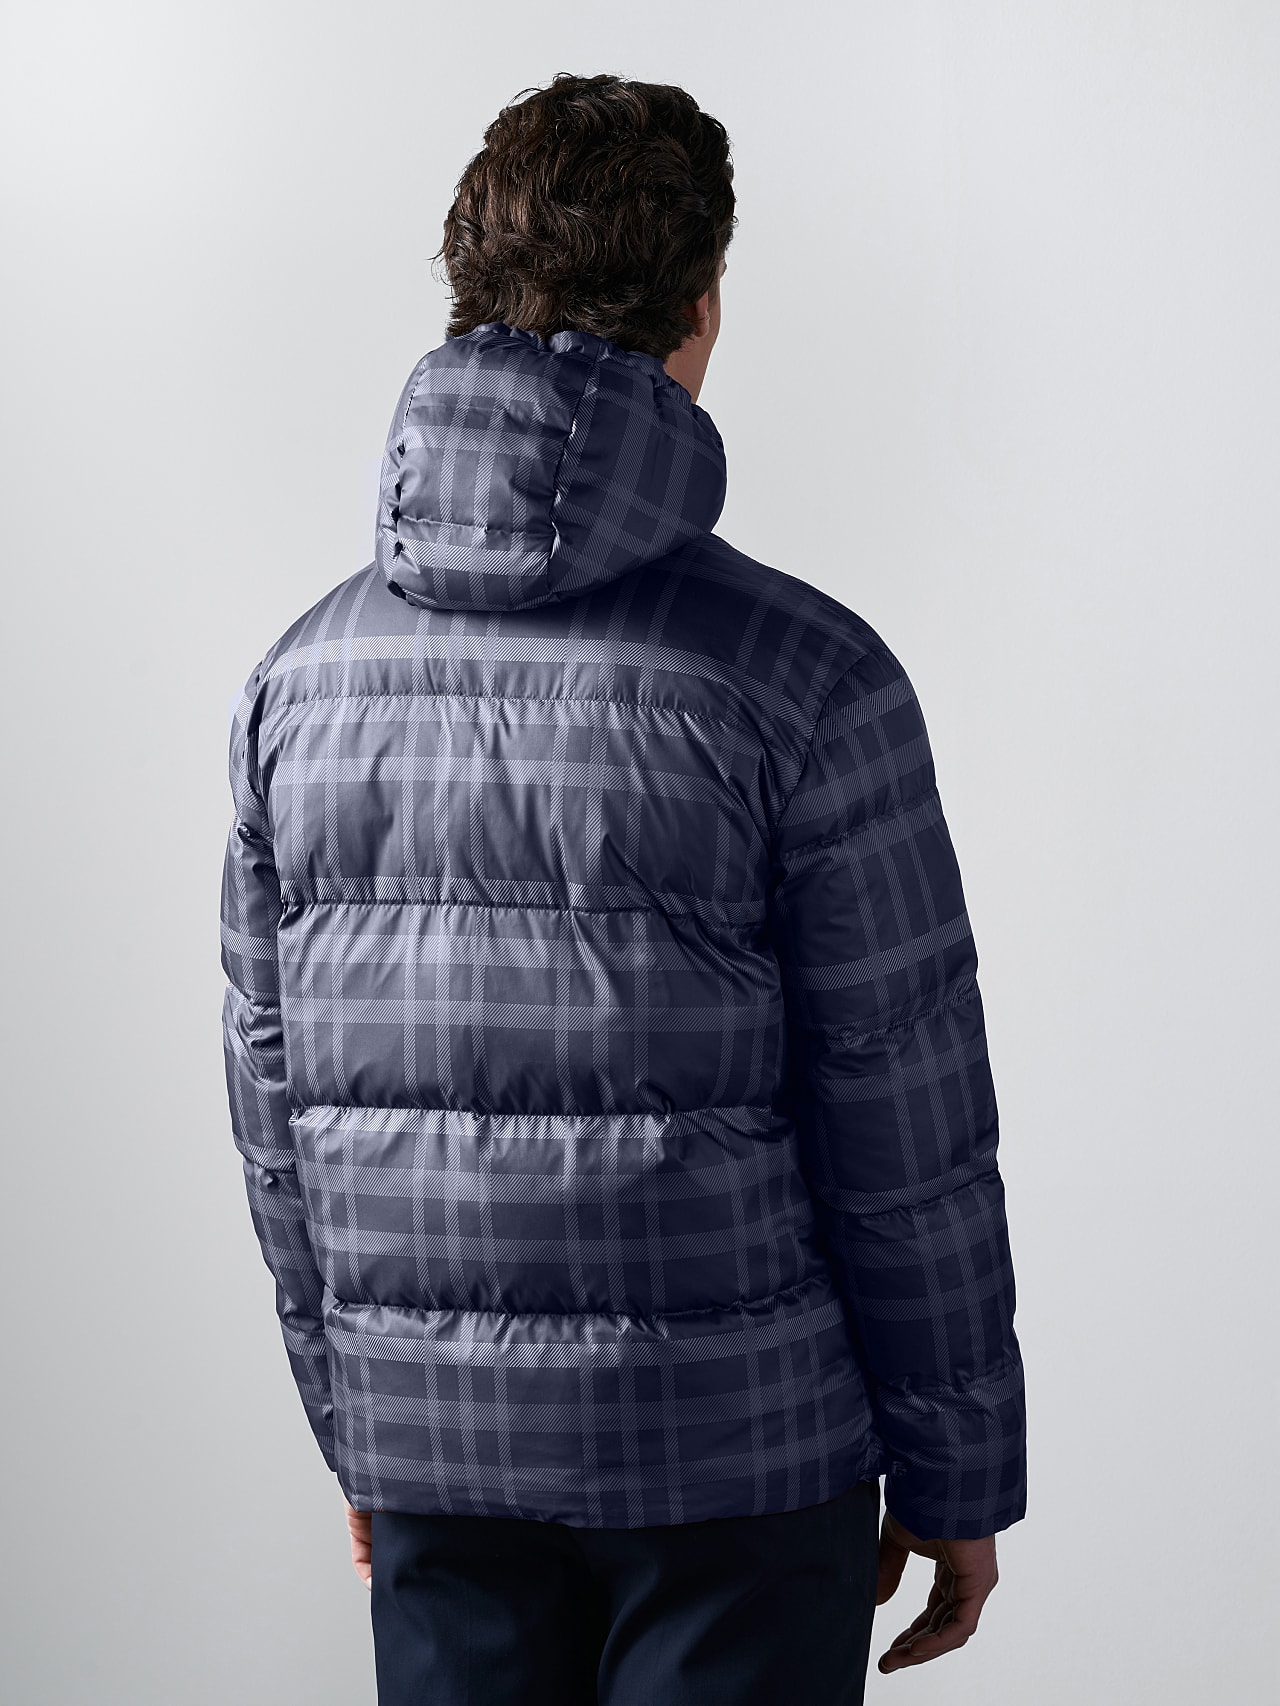 OTACE V1.Y5.02 Reversible 2-in-1 Puffer Jacket navy Front Main Alpha Tauri